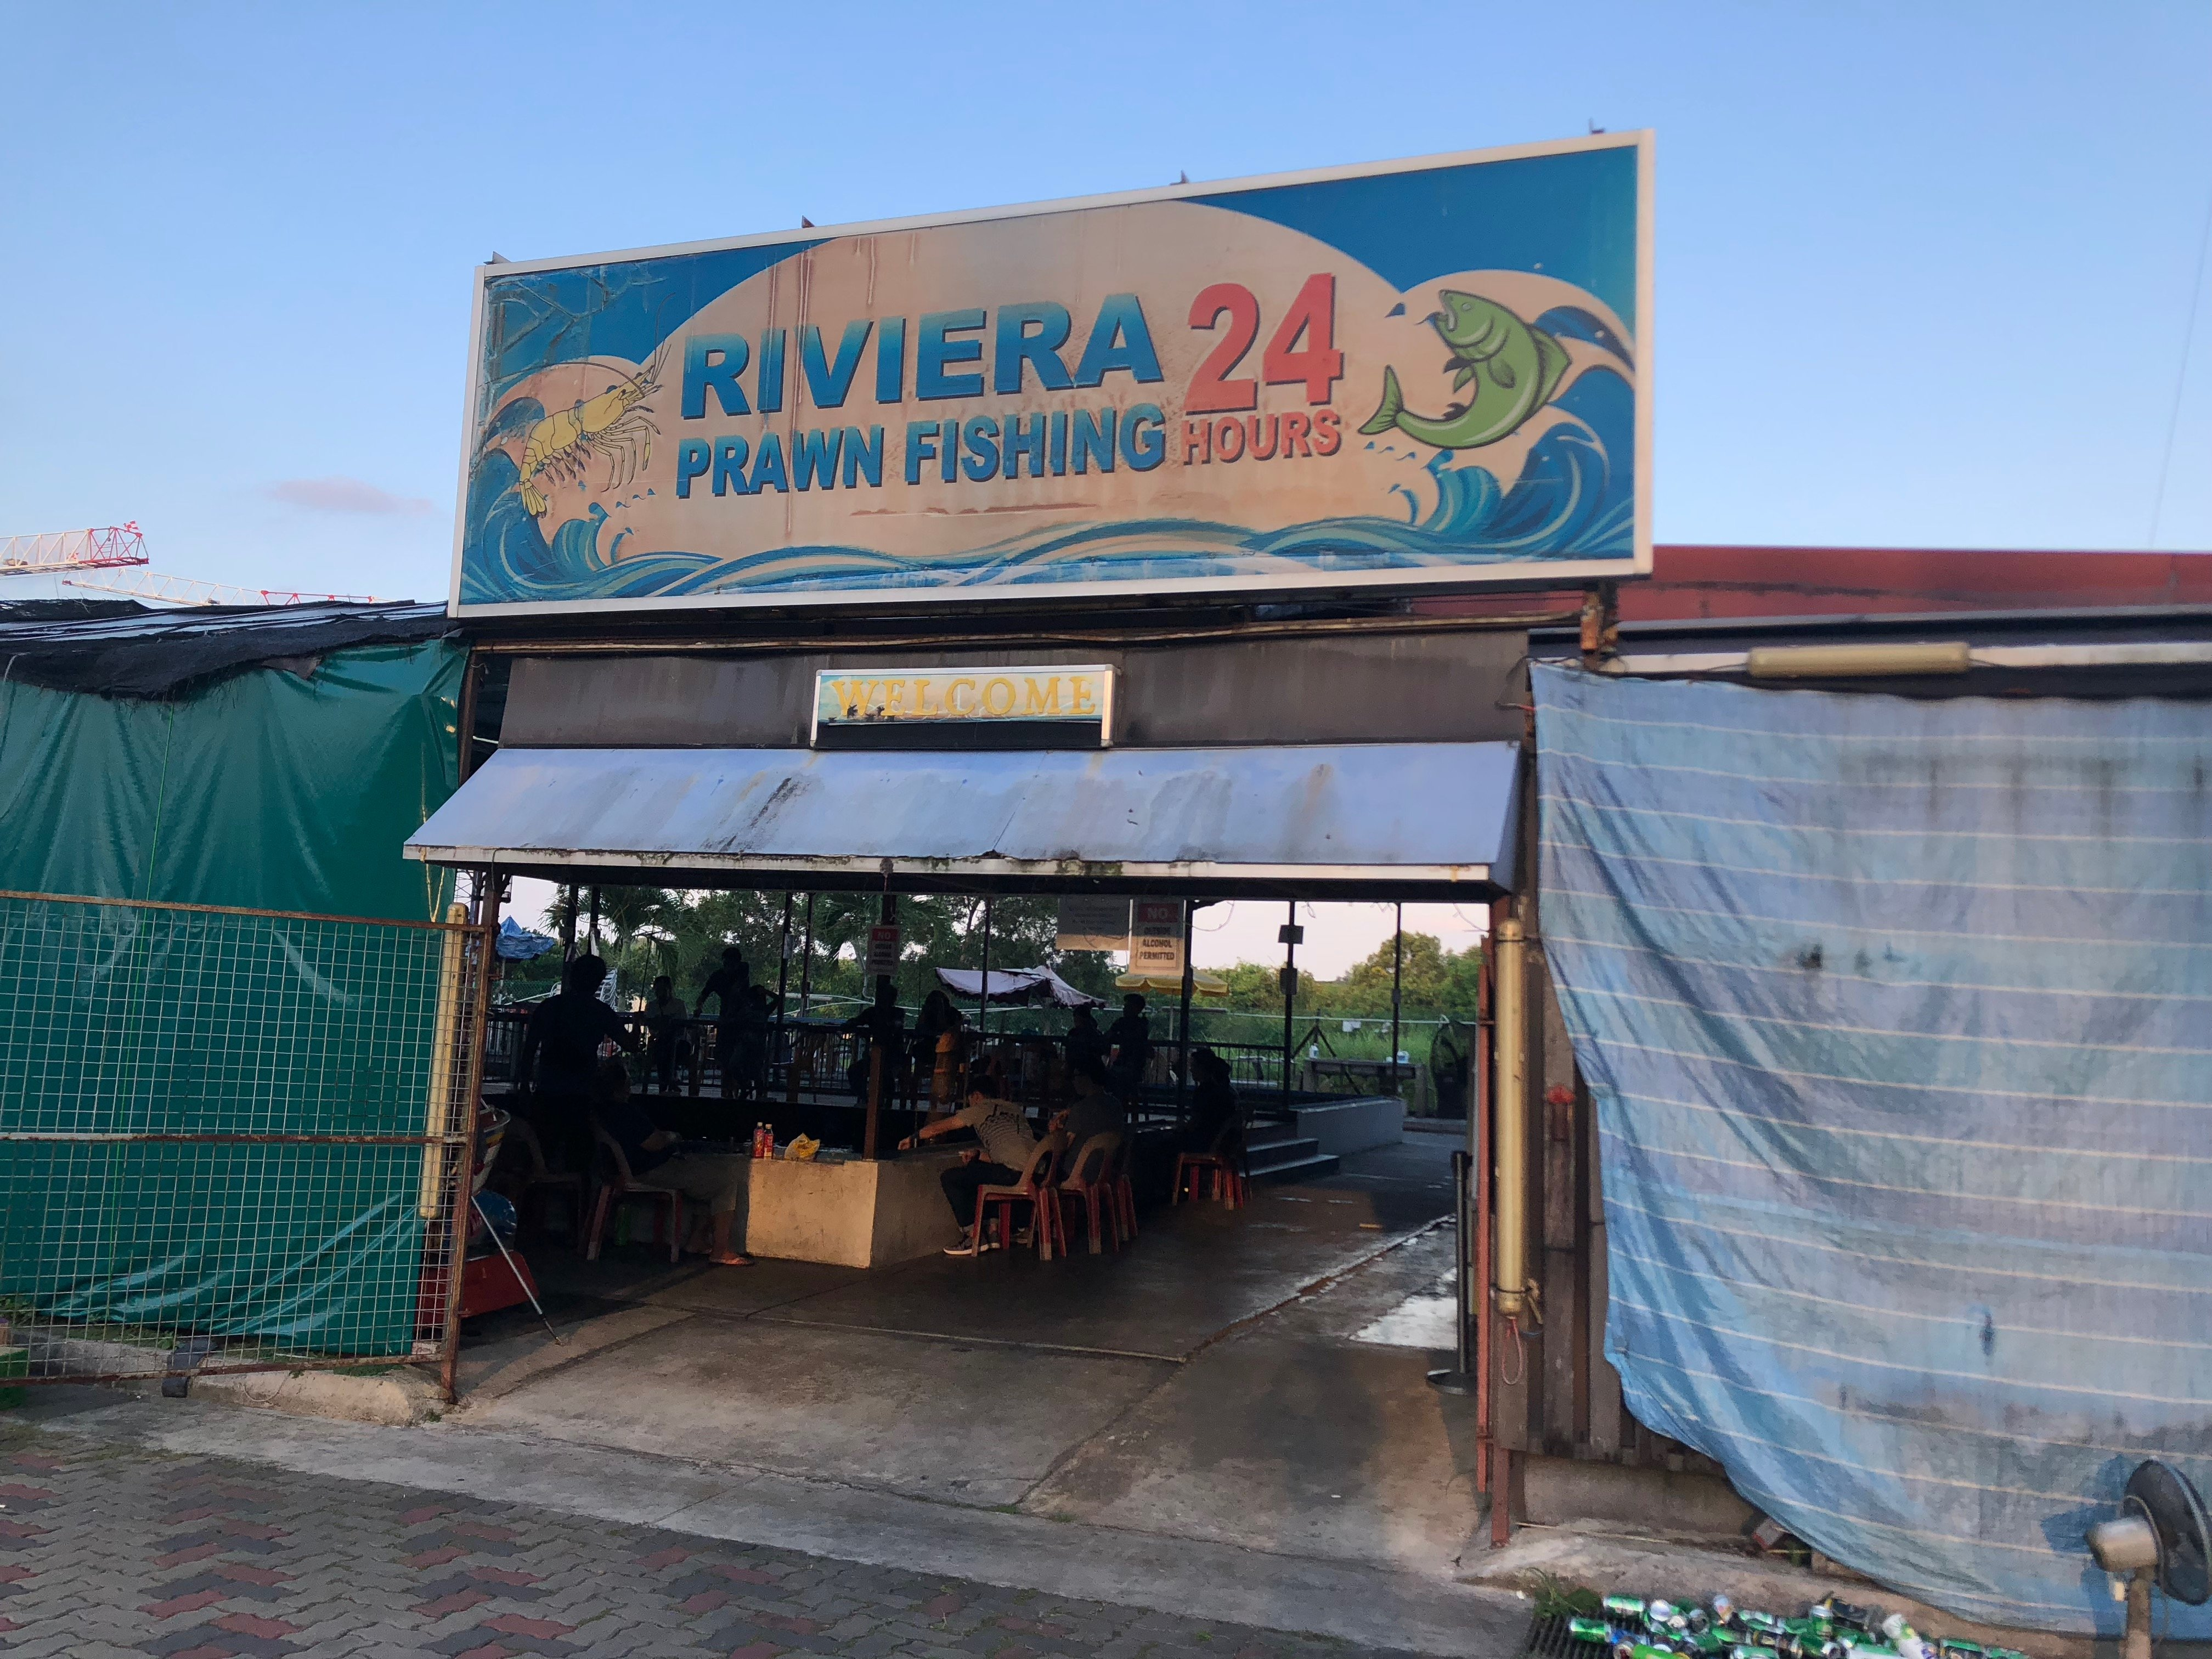 The front entrance of Riviera Prawn Fishing.